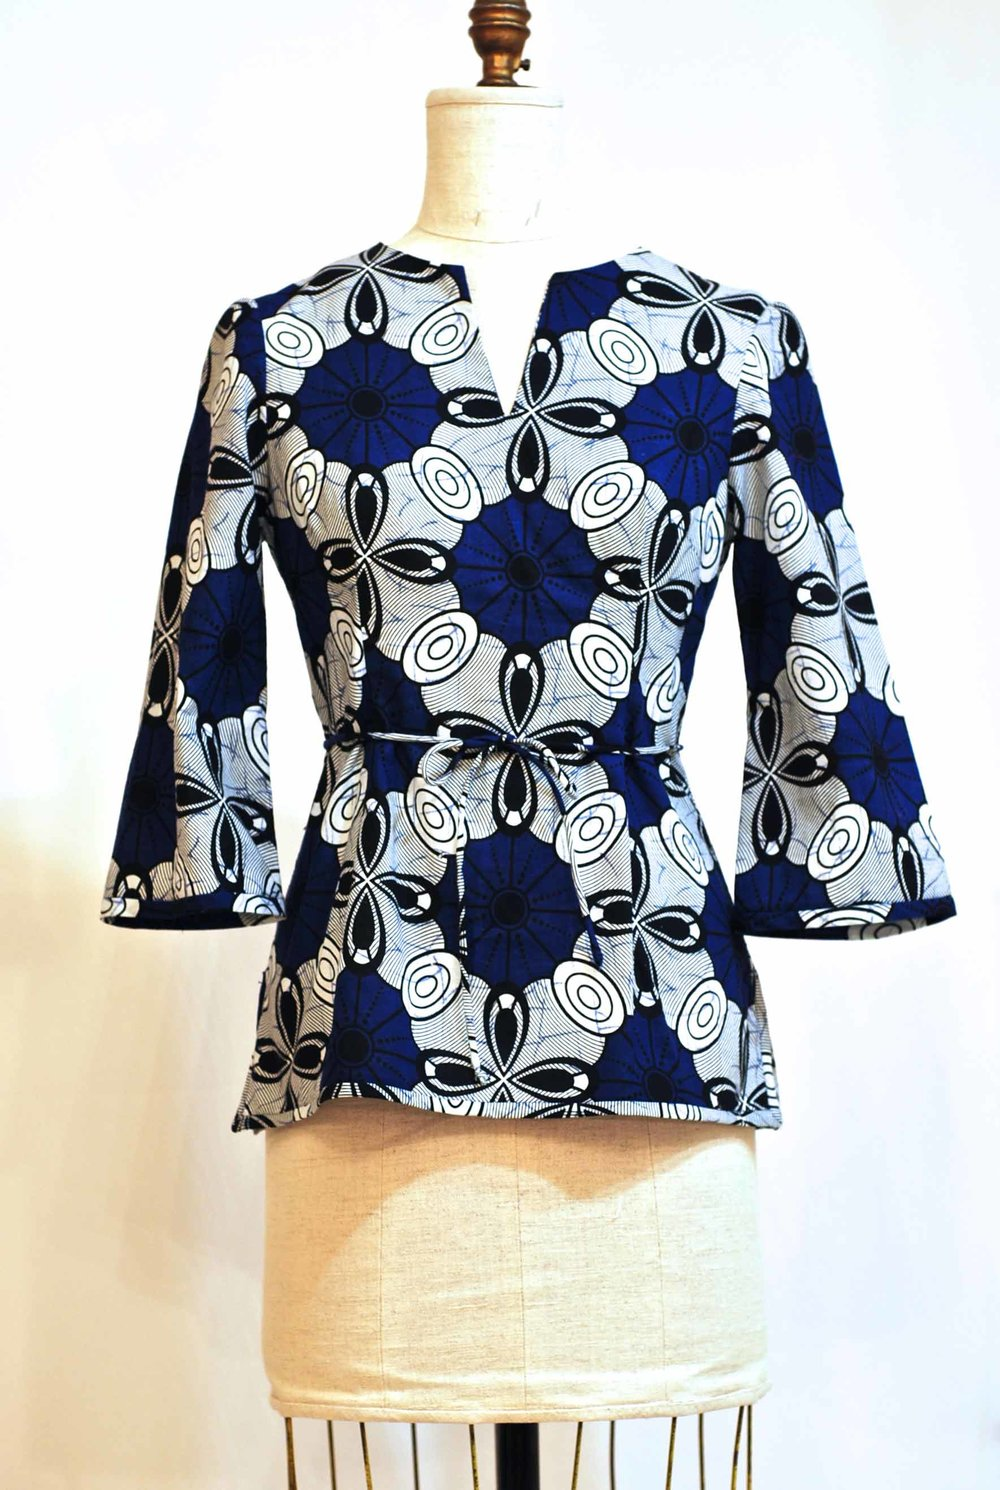 Blue / white Tunic  -  sz 6  -  Bust 34  waist  28  -  was $285.   now $175.  100% Cotton  -  Machine Washable